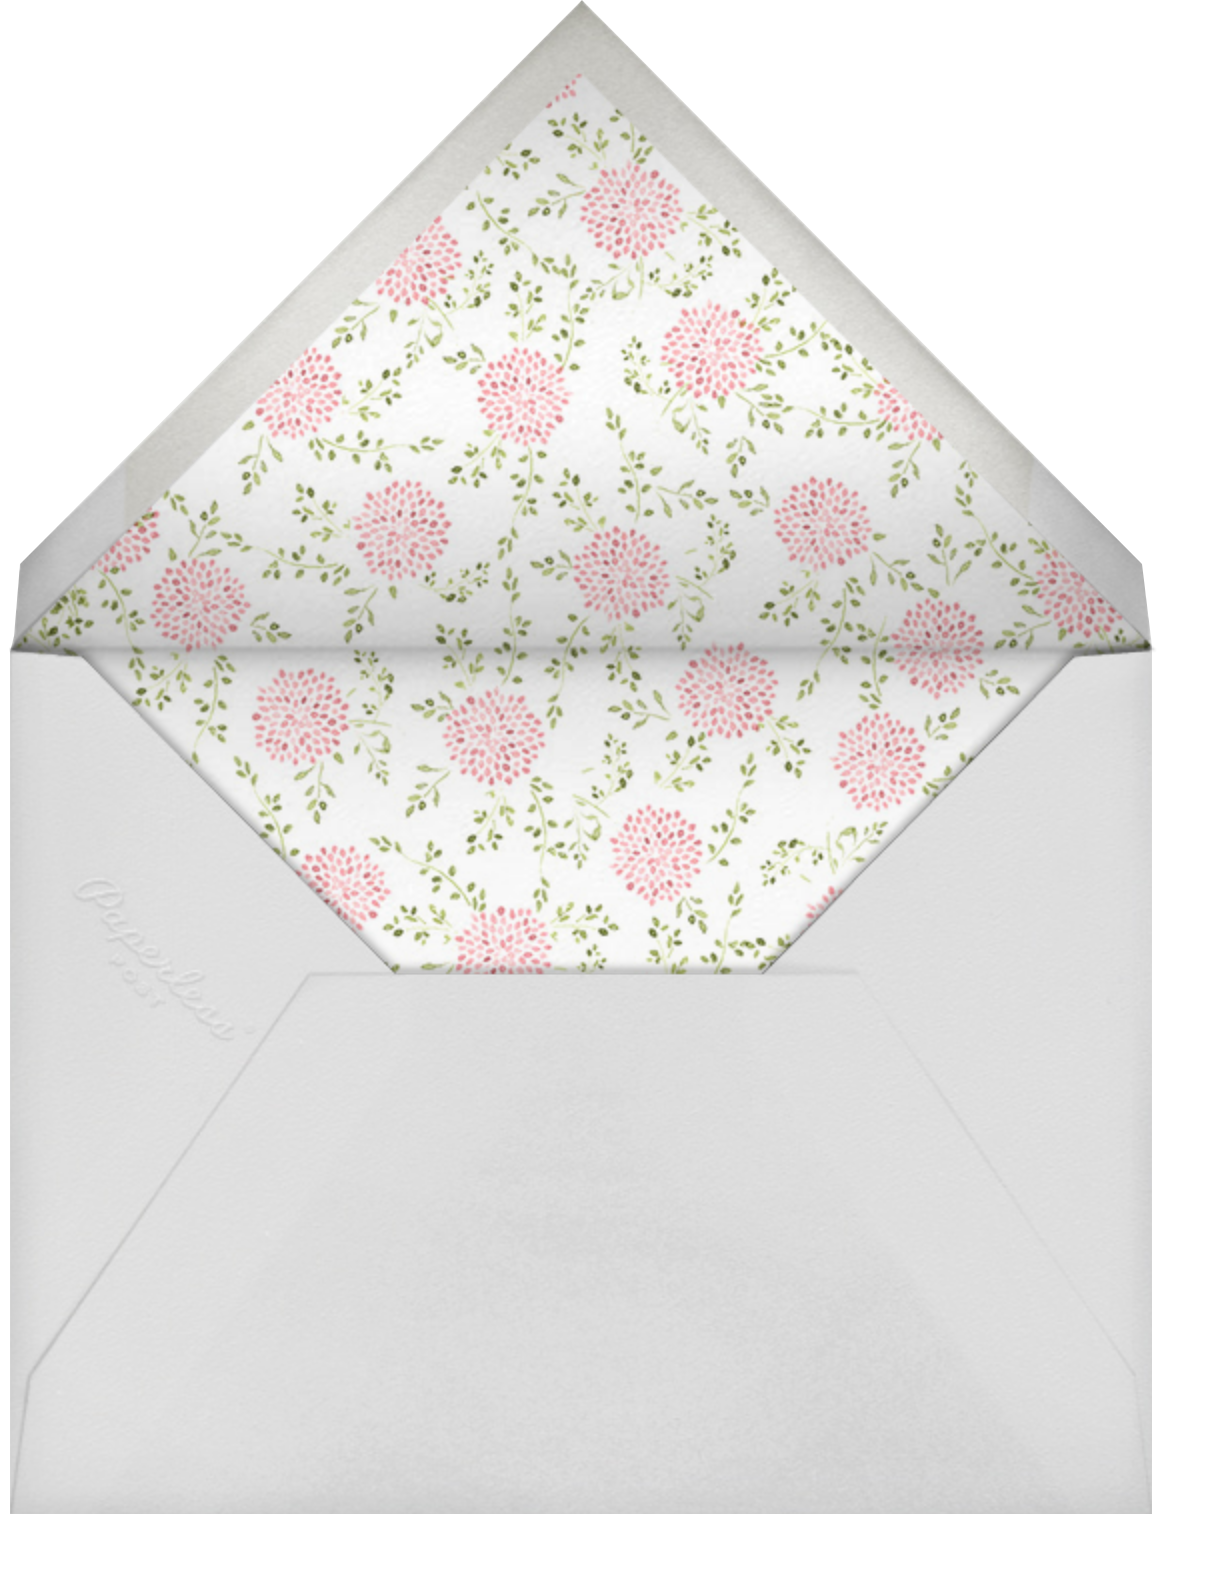 Dahlias (Photo) - Pink - Paperless Post - Baby shower - envelope back